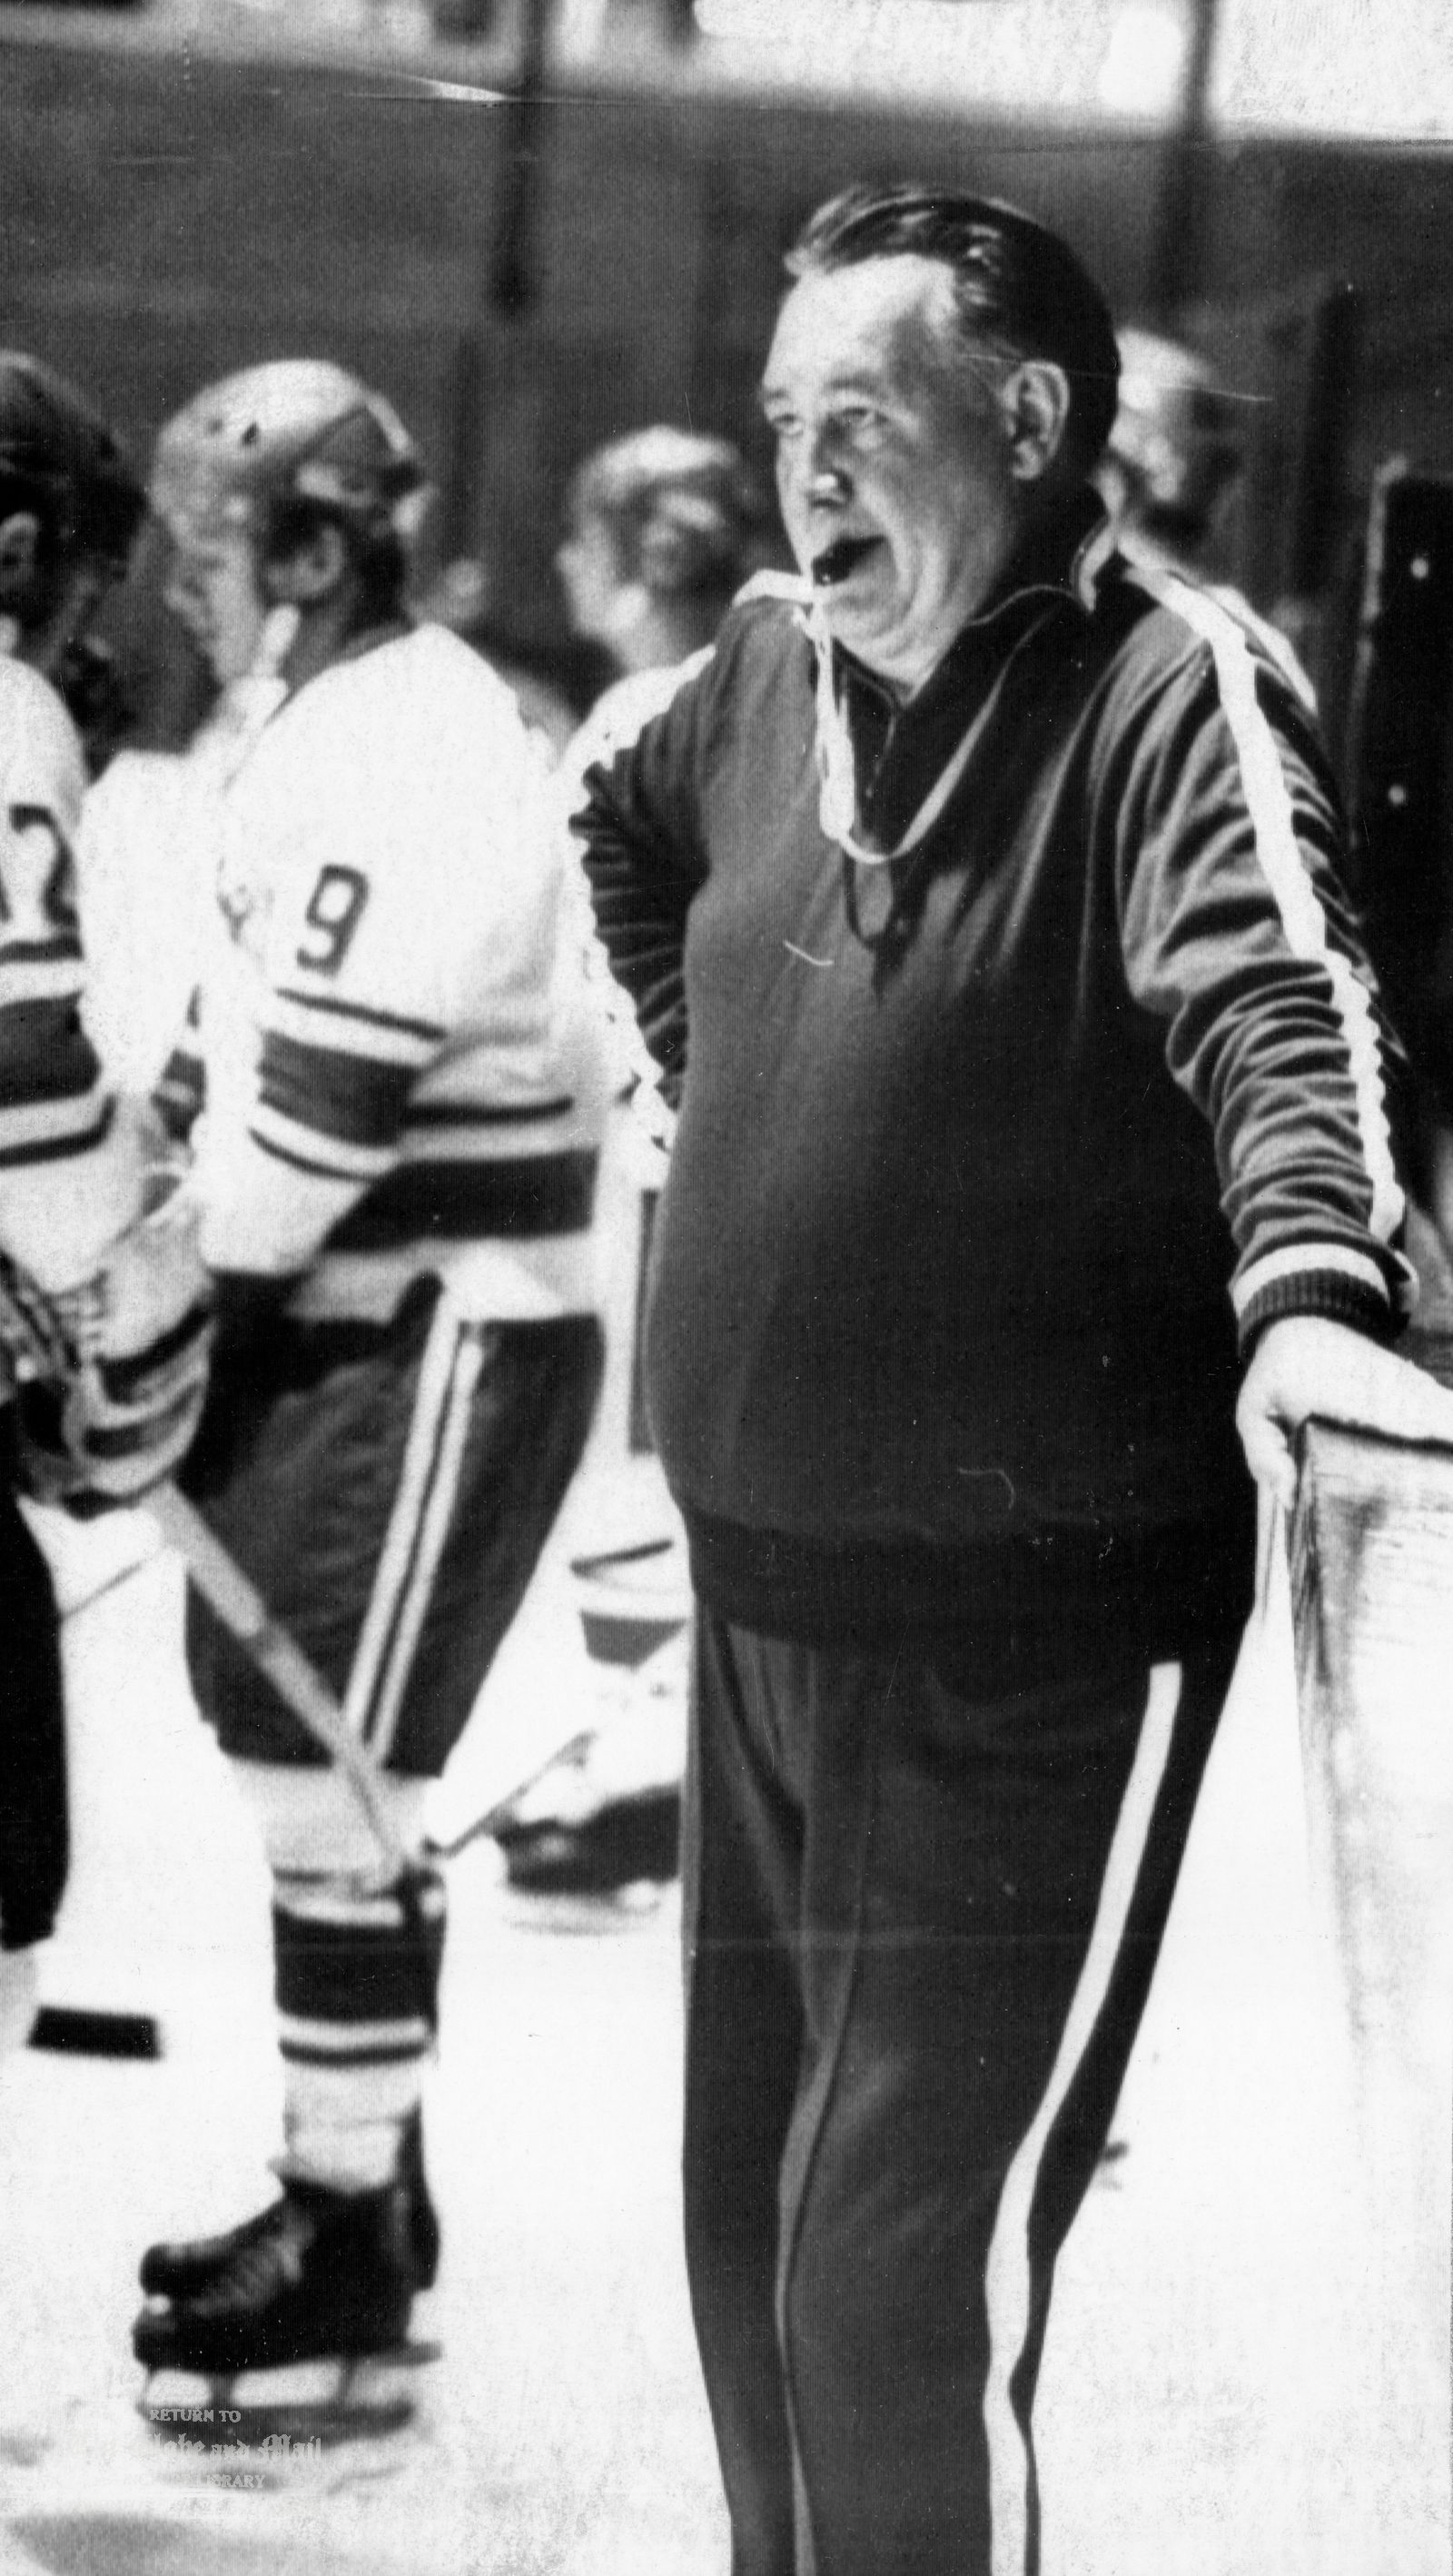 AUGUST 31, 1972 -- MONTREAL -- RUSSIAN HOCKEY TEAM PRACTICE -- Boris Kulagin, second coach of the Russian National Hockey team, looks cool and concentrated at a practice run of the Soviet team at the St. Lawrence Arena in Montreal, August 31, 1972. The Russians meet Team Canada for the first of eight games Sept. 2, 1972. CP PHOTO